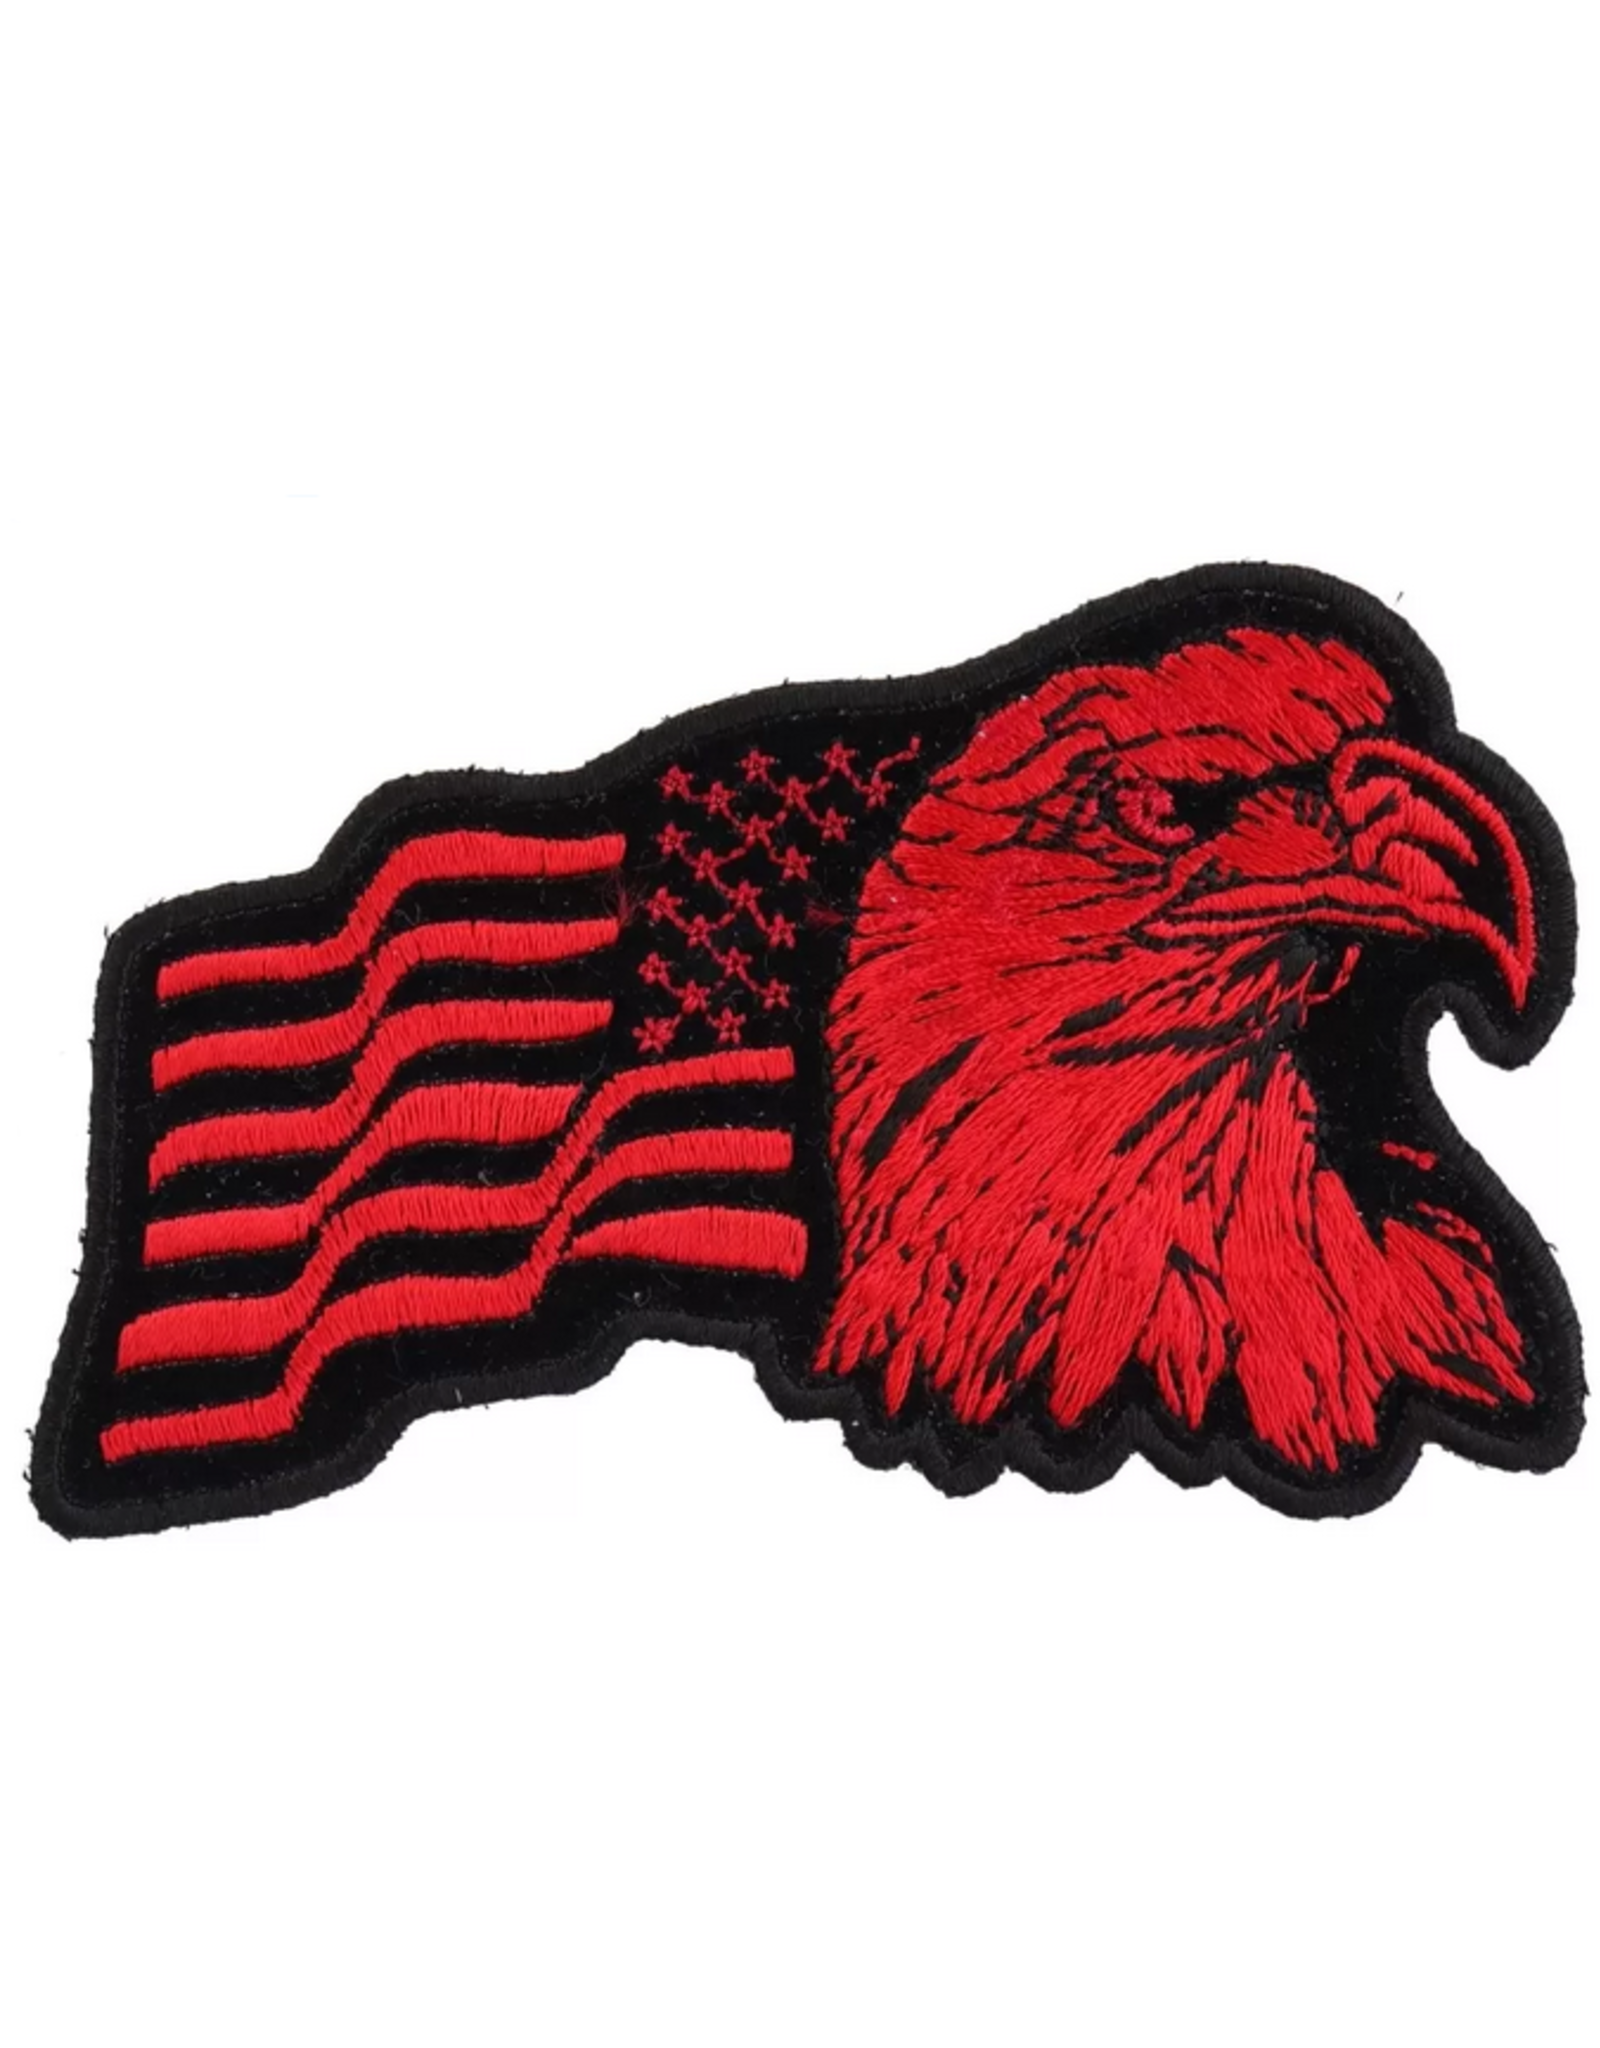 """MidMil Embroidered Reverse Eagle Head with Wavy American Flag Red on Black Patch 3.8"""" wide x 2.3"""" high"""